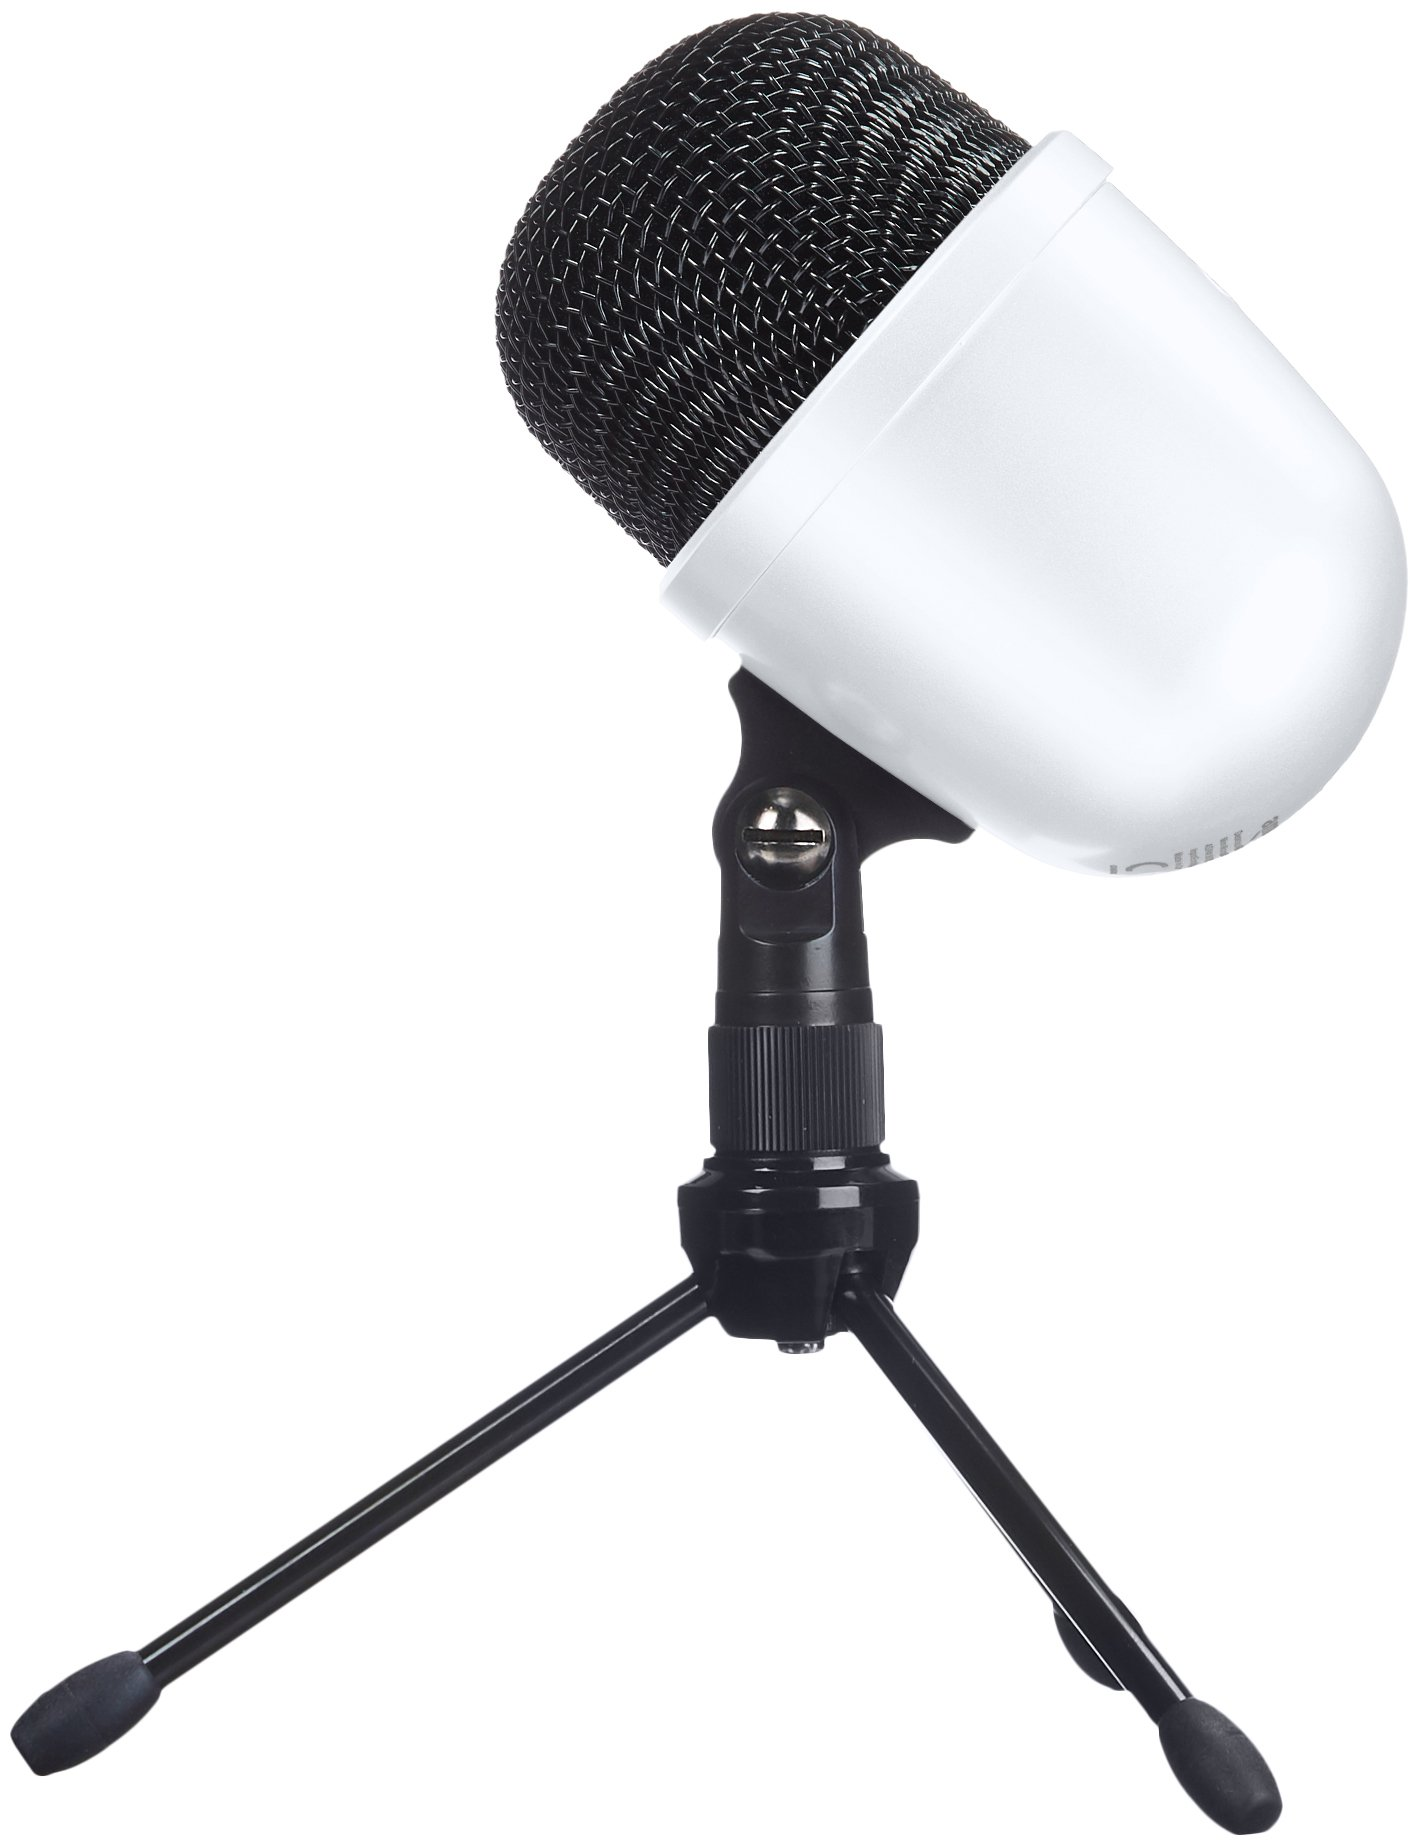 AmazonBasics Desktop Mini Condenser Microphone - White